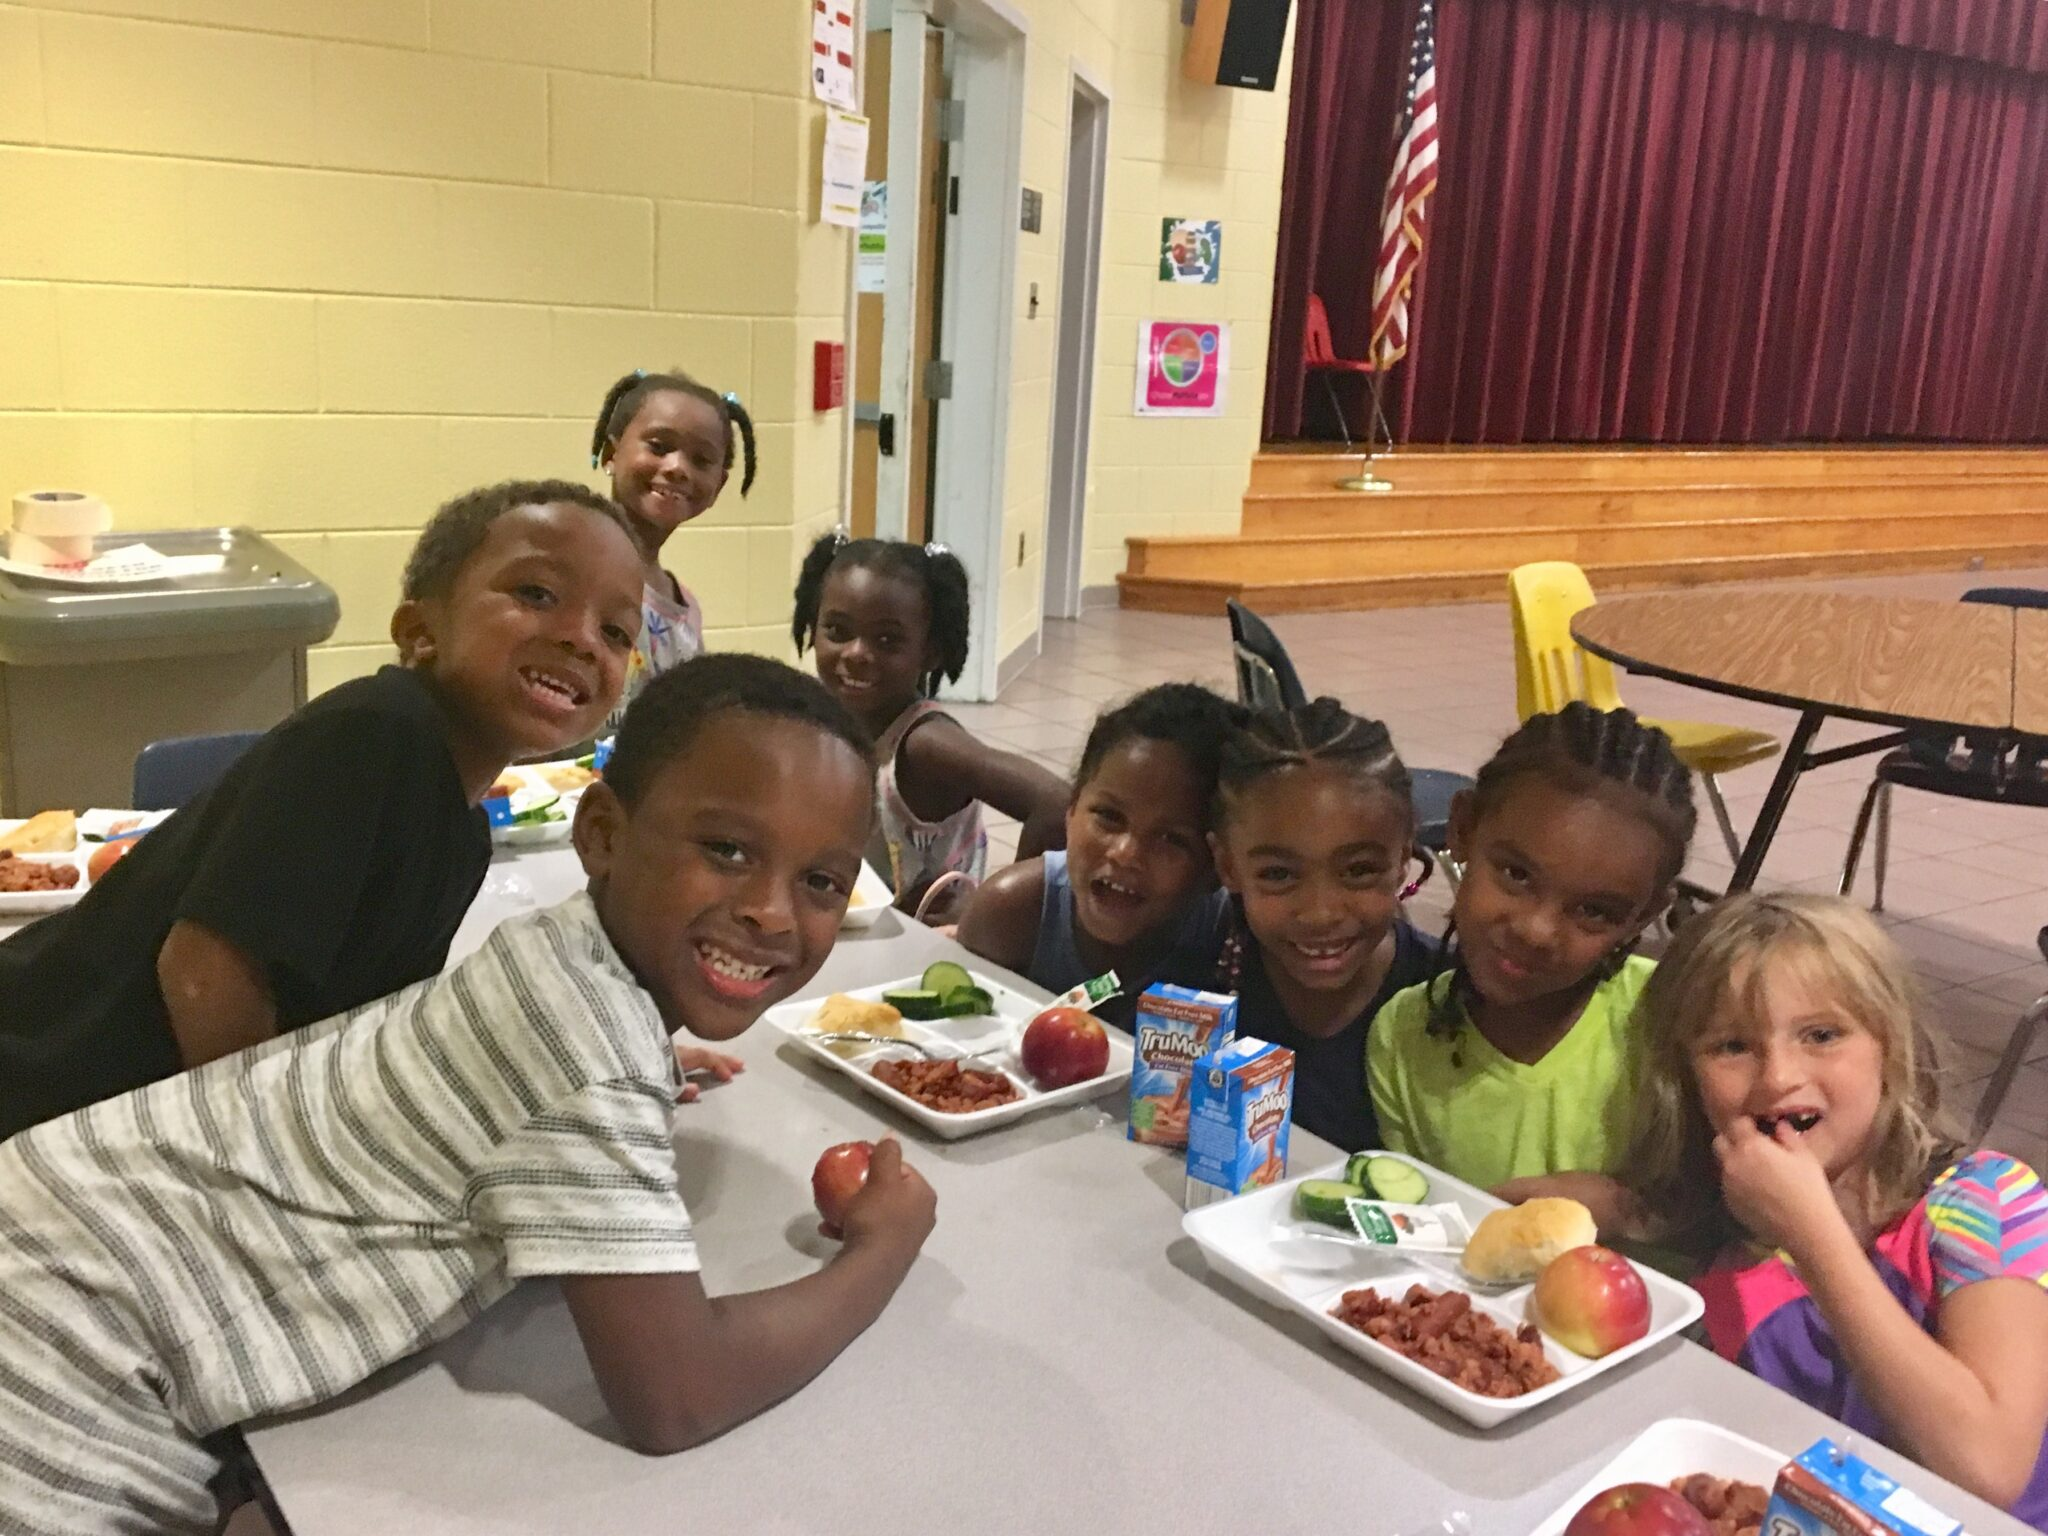 Kids smiling with food, friends and fun